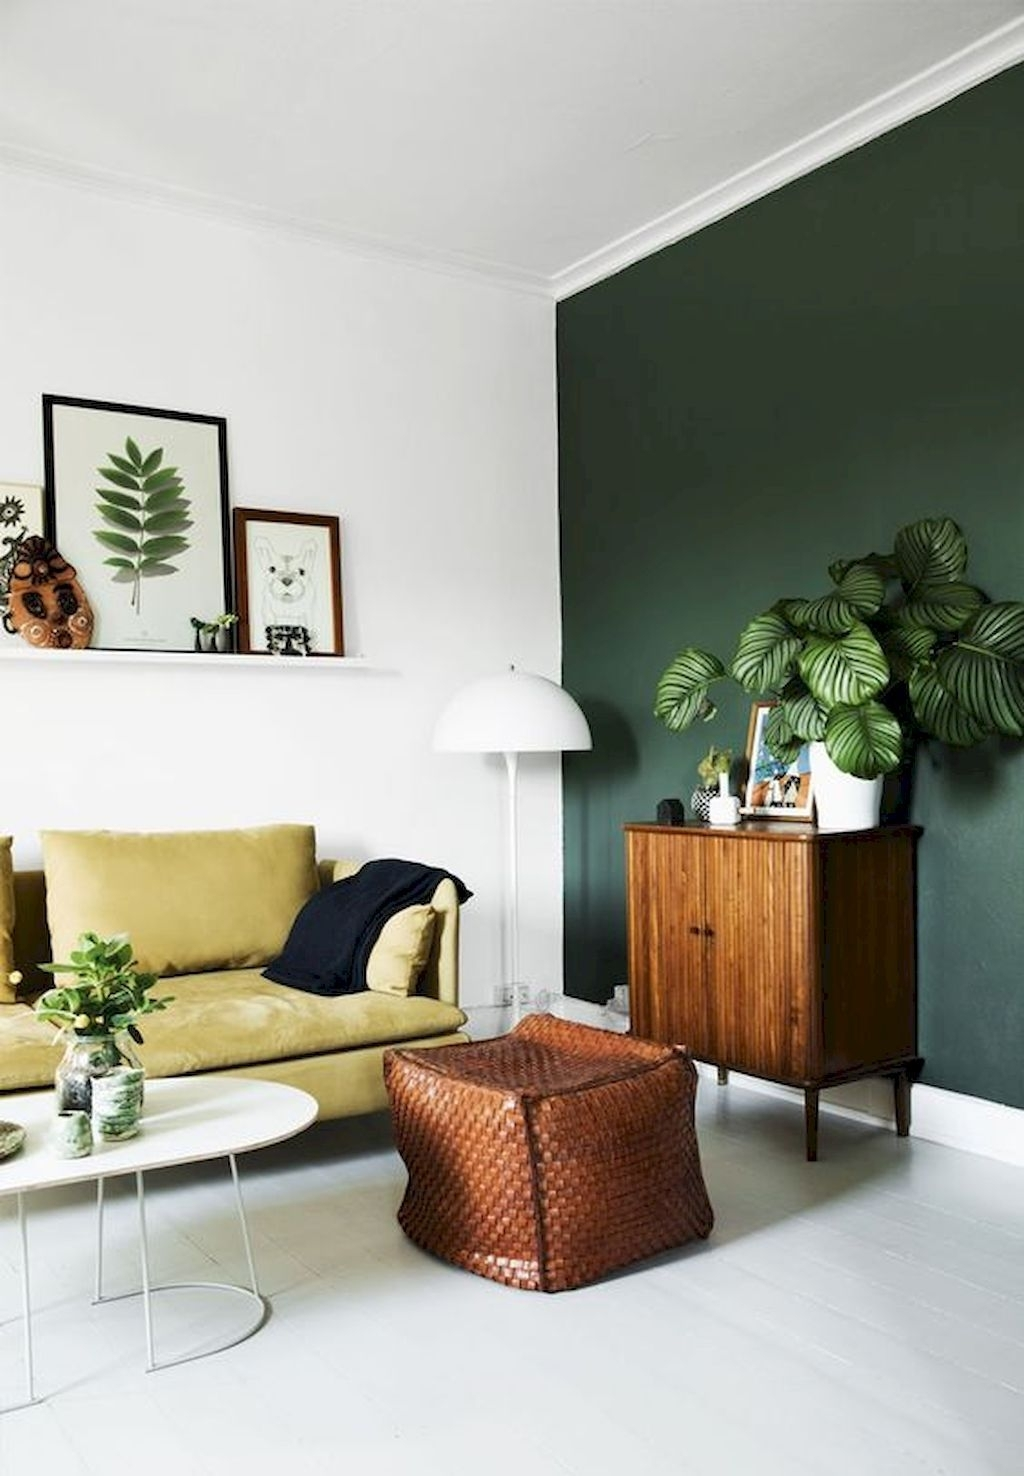 85 Cool Scandinavian Style Living Room Decor And Design Ideas Inside 2018 Green Wall Accents (View 3 of 15)